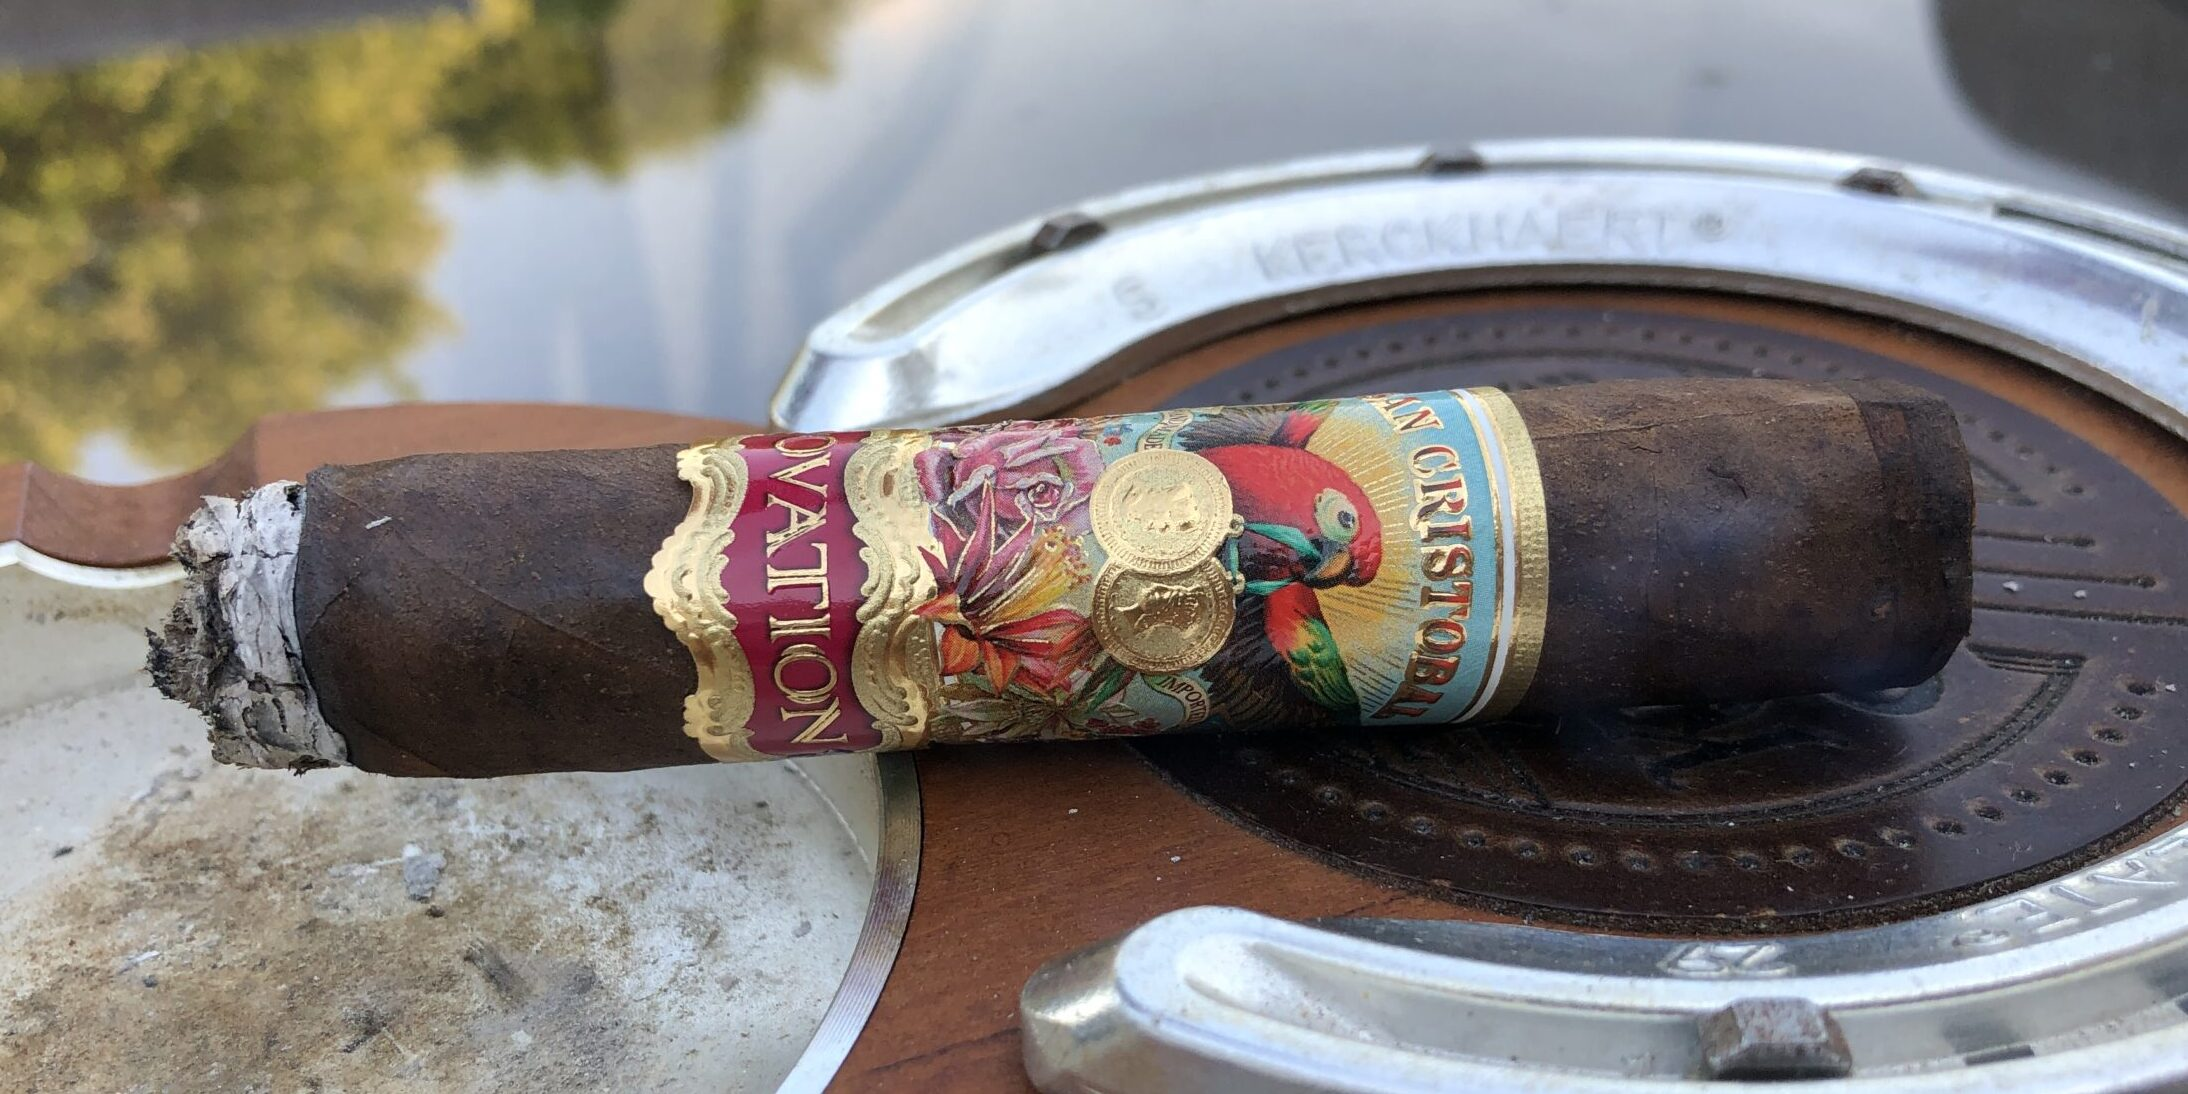 Read more about the article San Cristobal Ovation Opulence Robusto Cigar Review